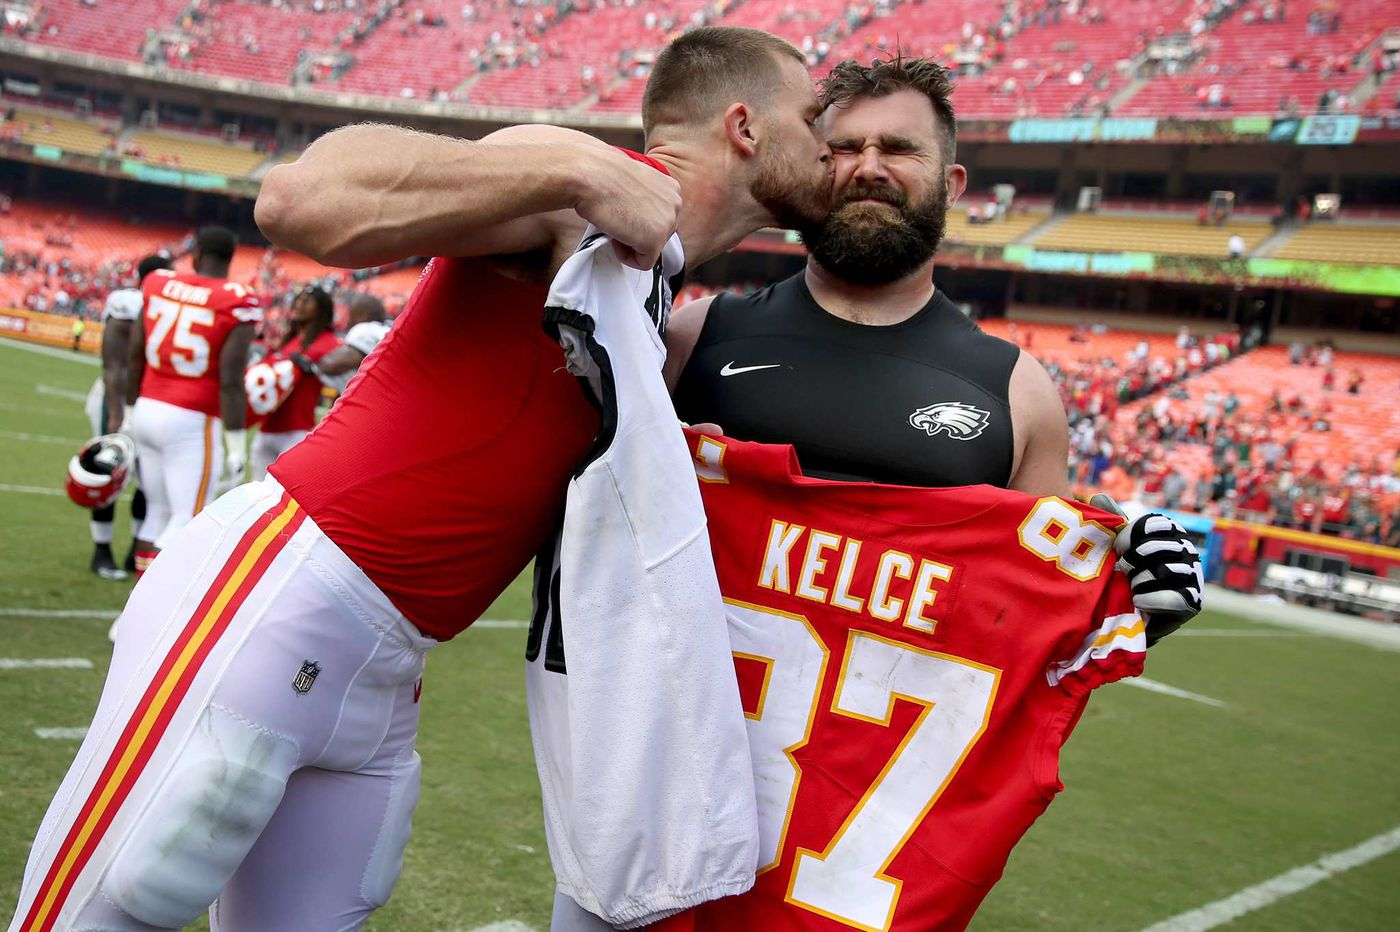 NFL jersey swaps: After the game ends, Eagles players say they can briefly become fans again